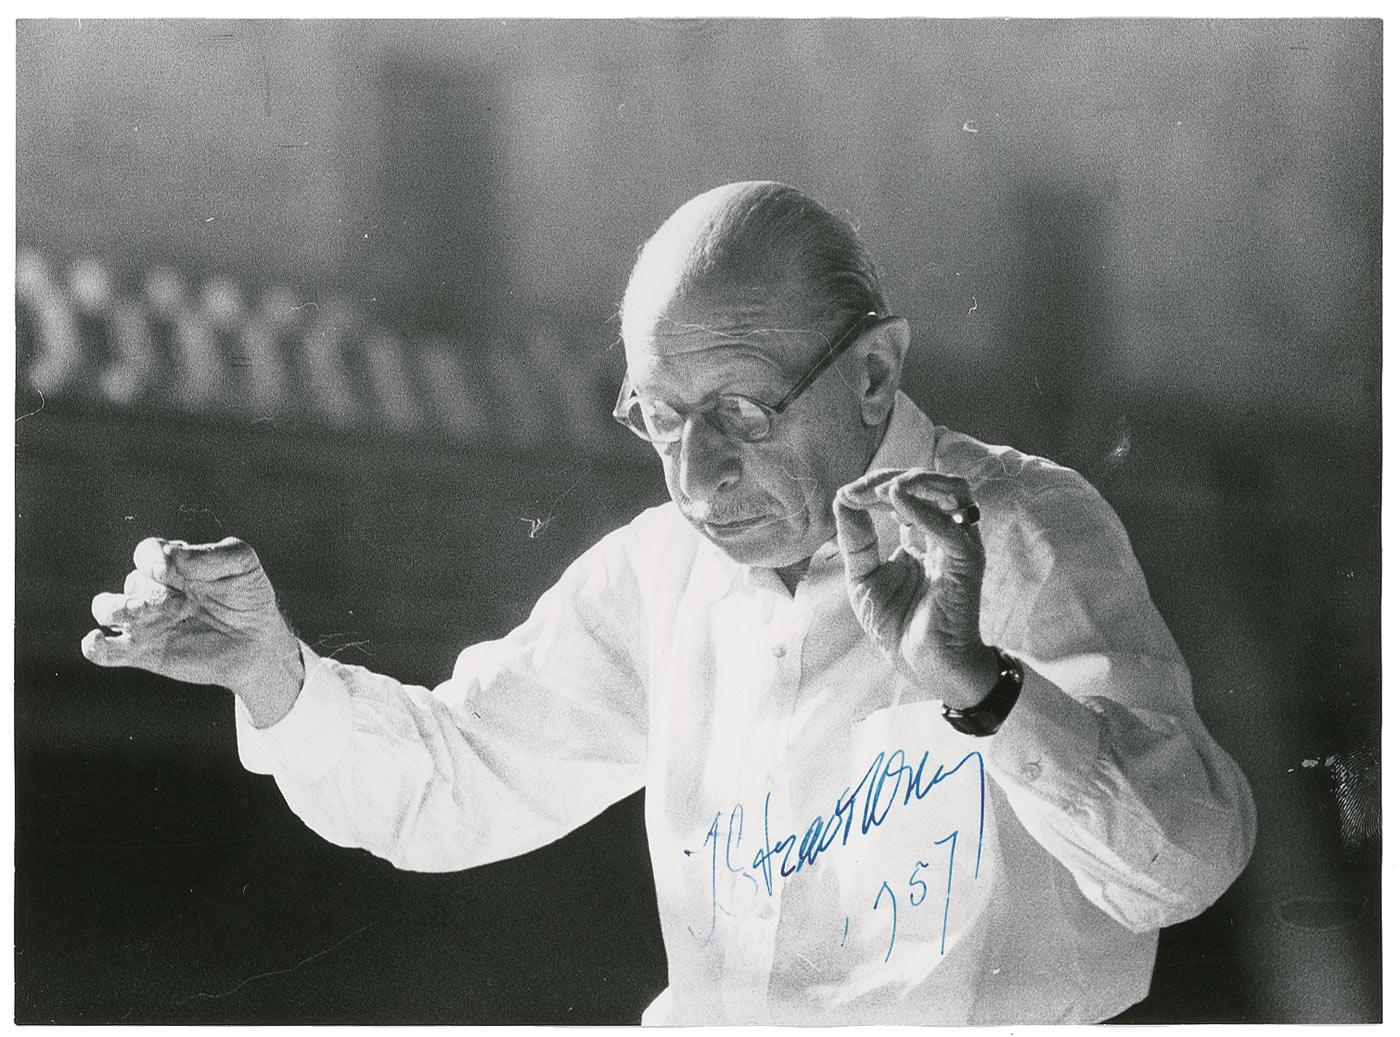 igor stravinsky conductor essay In the passage, composer igor stravinsky describes orchestra conductors by using rhetorical devices and detailed language to convey his feelings on the subject he is.